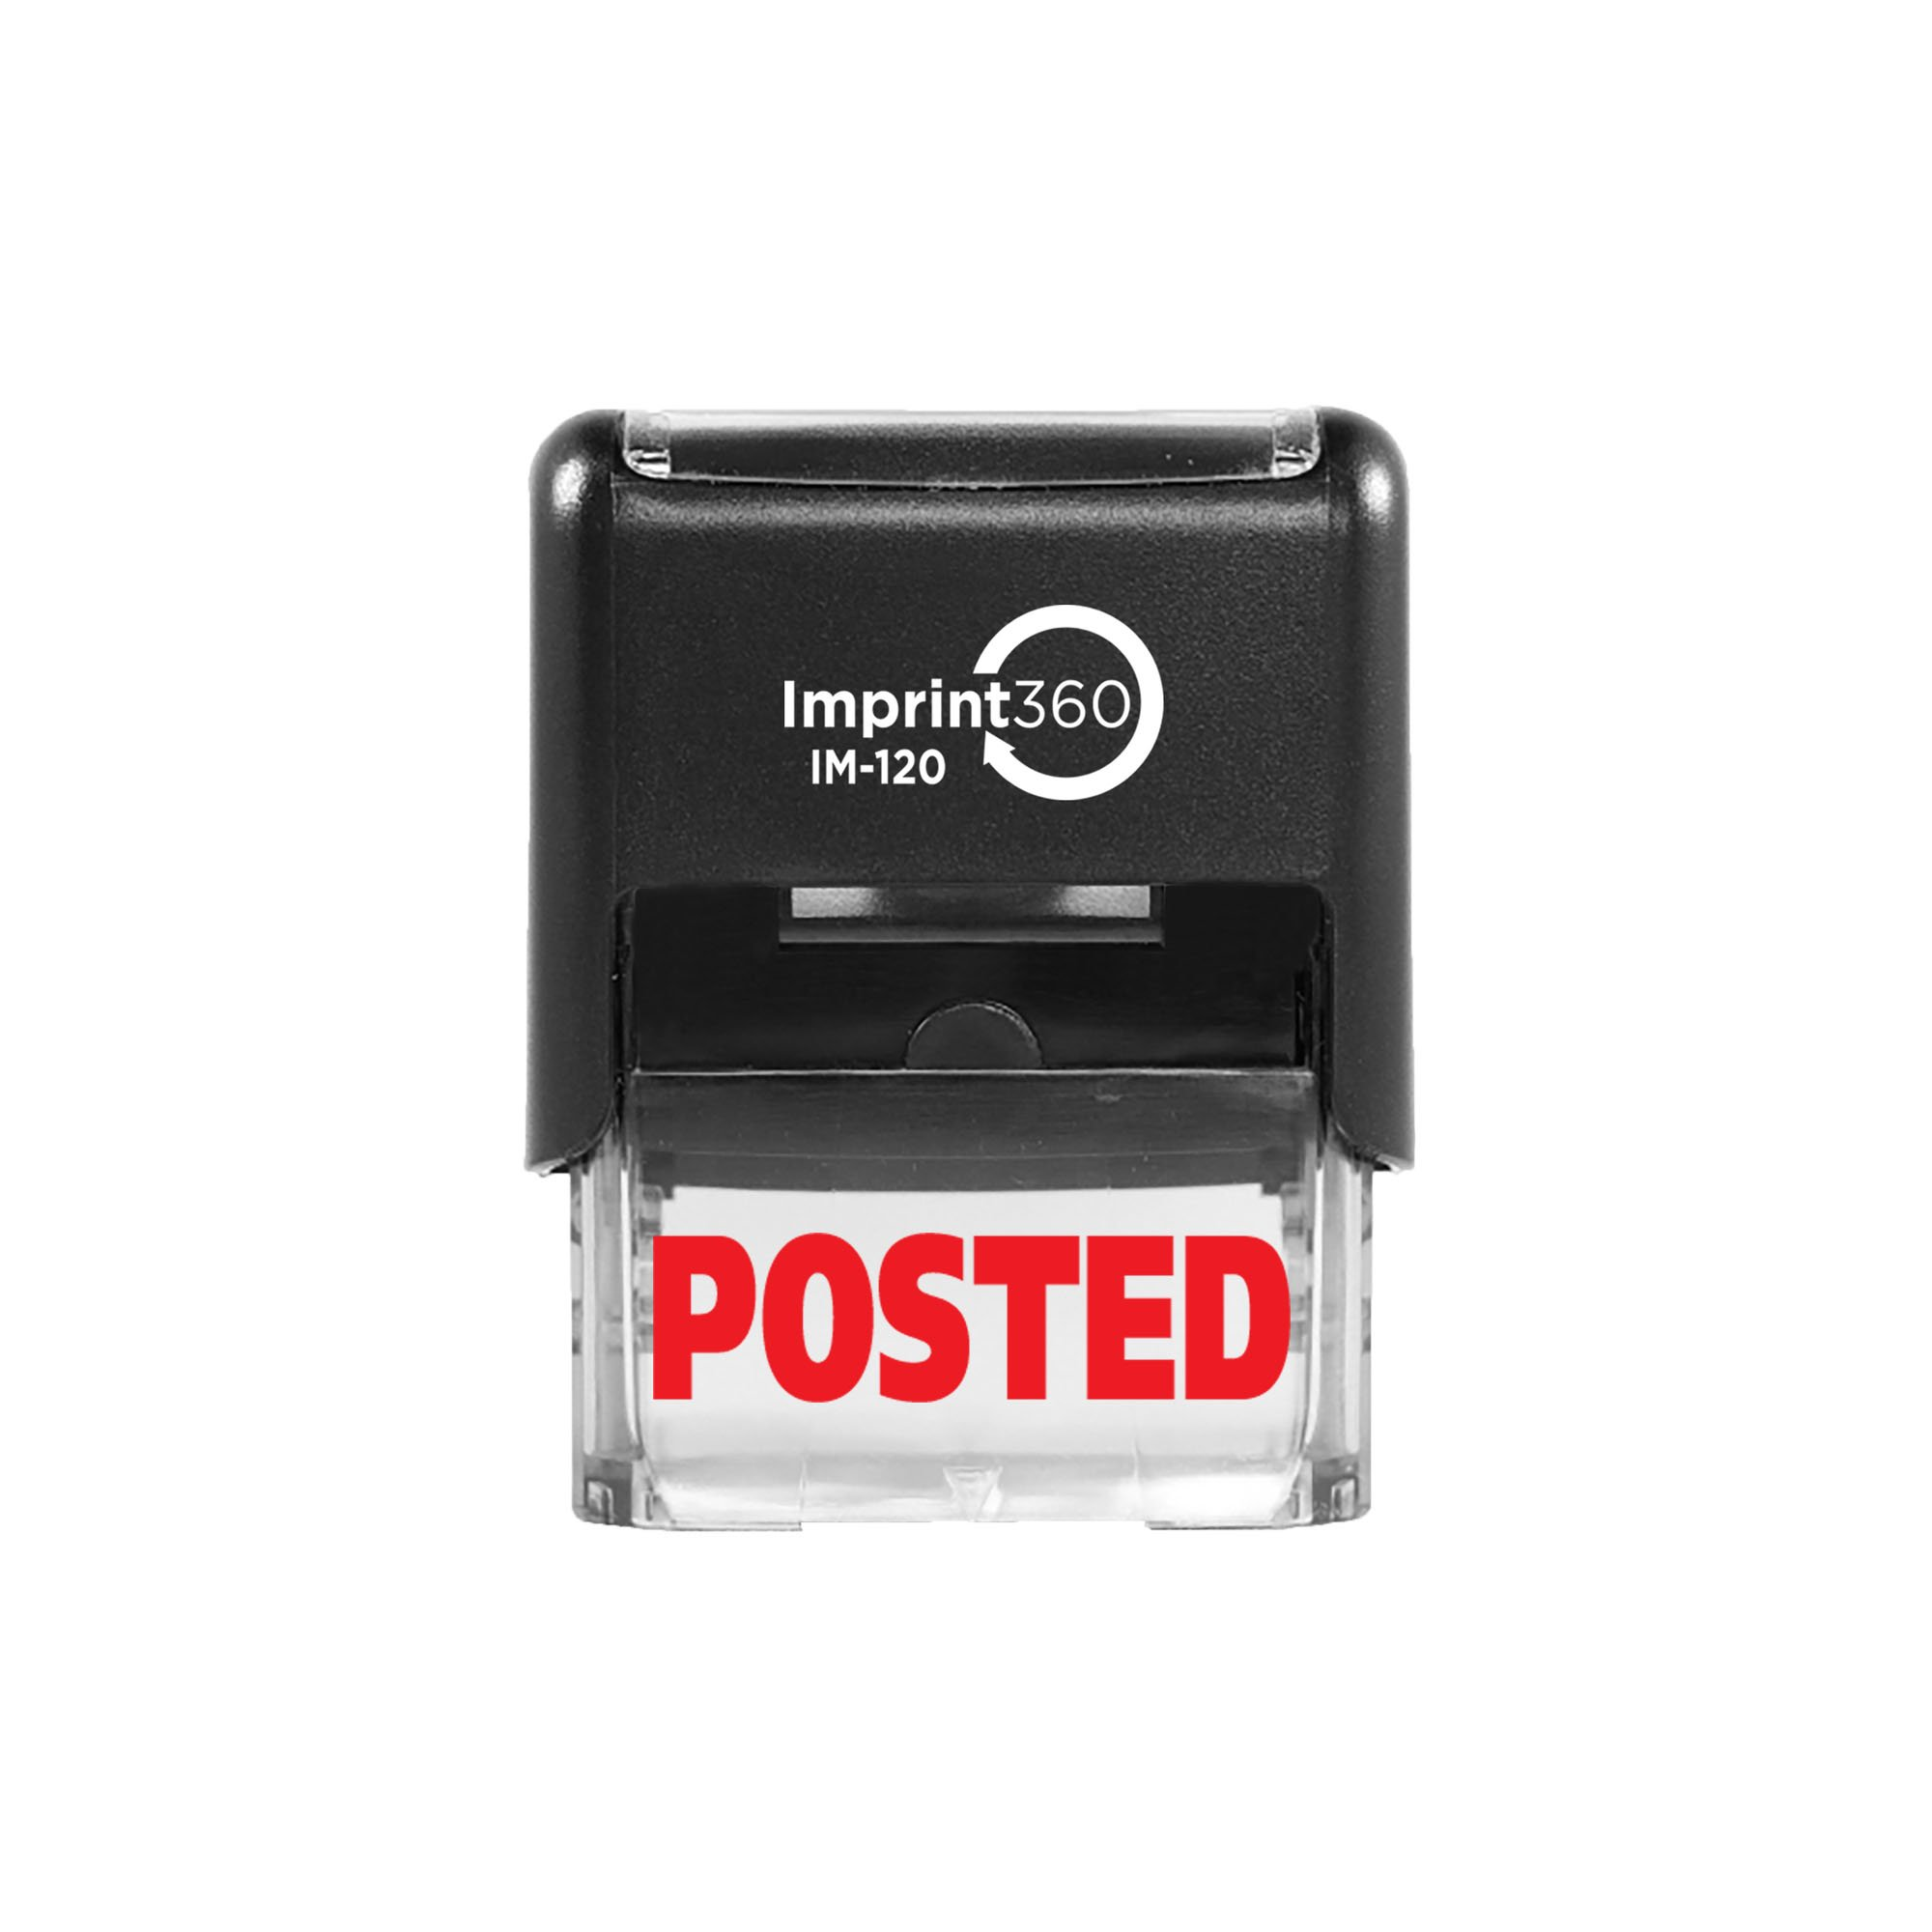 """Imprint 360 AS-IMP1034 - Posted, Heavy Duty Commerical Quality Self-Inking Rubber Stamp, Red Ink, 9/16"""" x 1-1/2"""" Impression Size, Laser Engraved for Clean, Precise Imprints"""